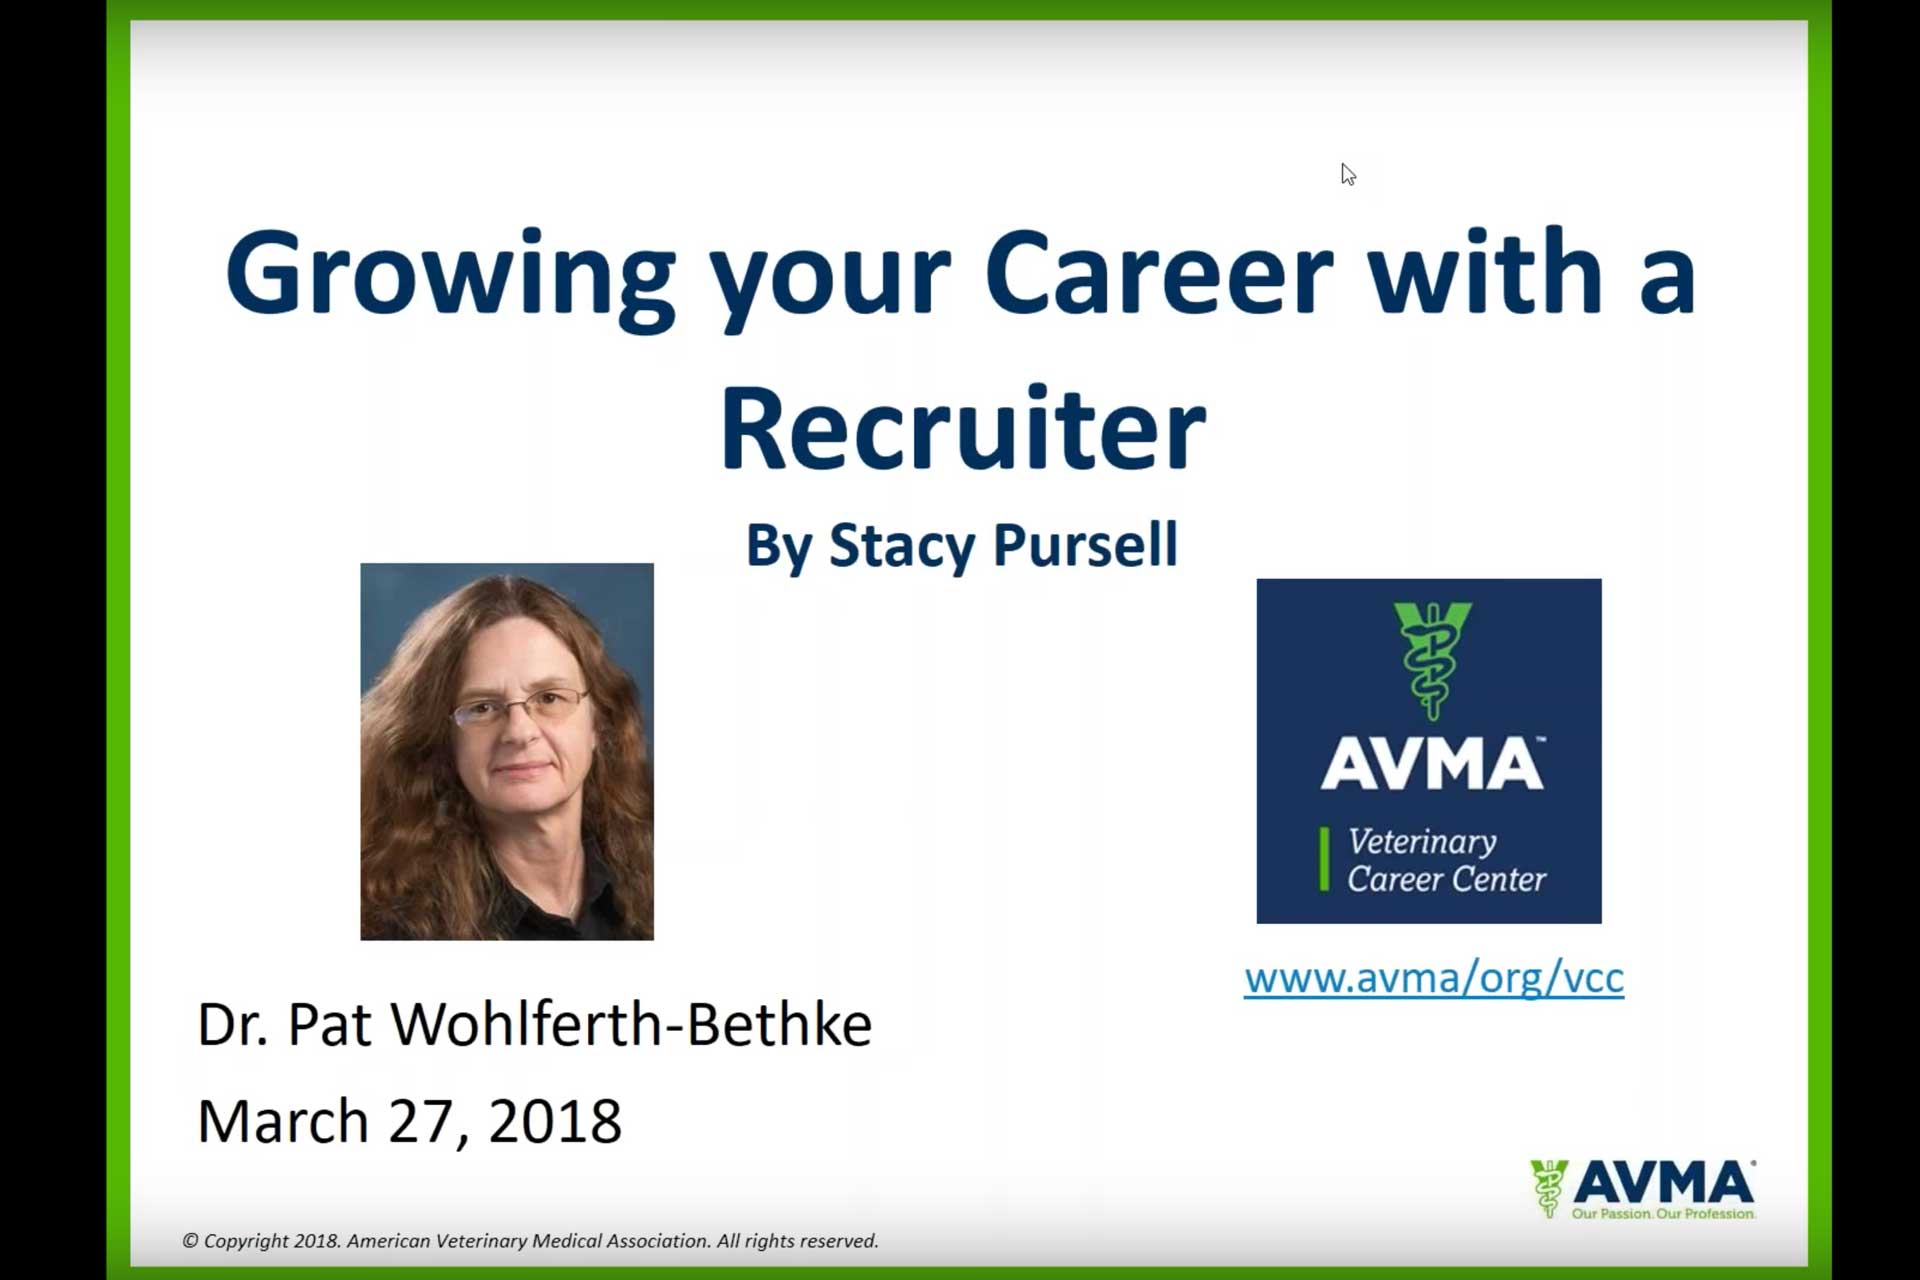 growing your career with a recruiter